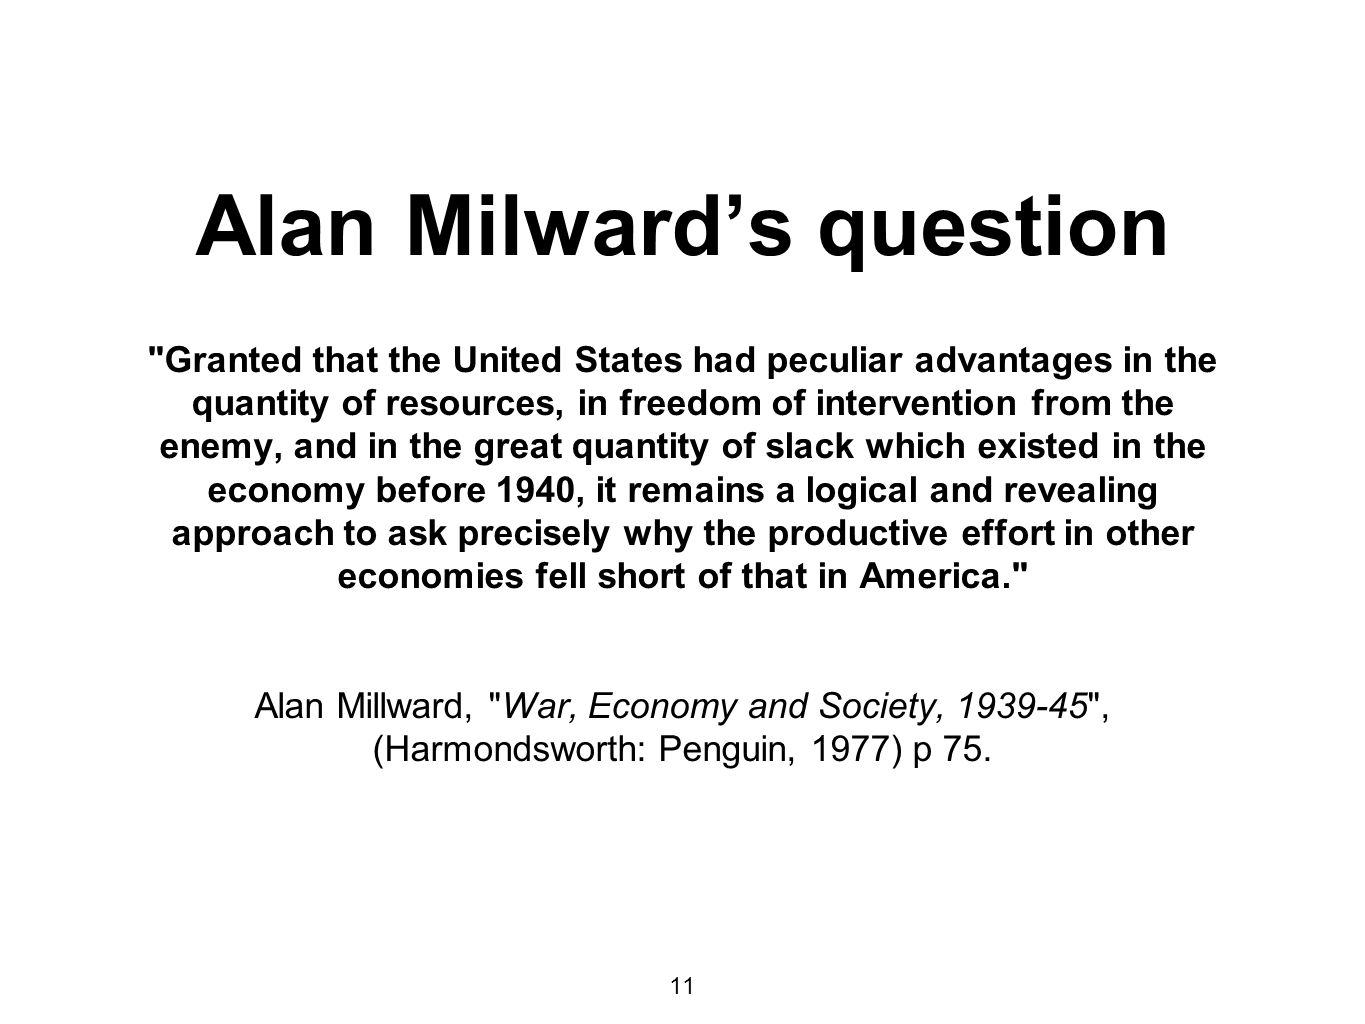 Alan Milward's question Granted that the United States had peculiar advantages in the quantity of resources, in freedom of intervention from the enemy, and in the great quantity of slack which existed in the economy before 1940, it remains a logical and revealing approach to ask precisely why the productive effort in other economies fell short of that in America. Alan Millward, War, Economy and Society, , (Harmondsworth: Penguin, 1977) p 75.